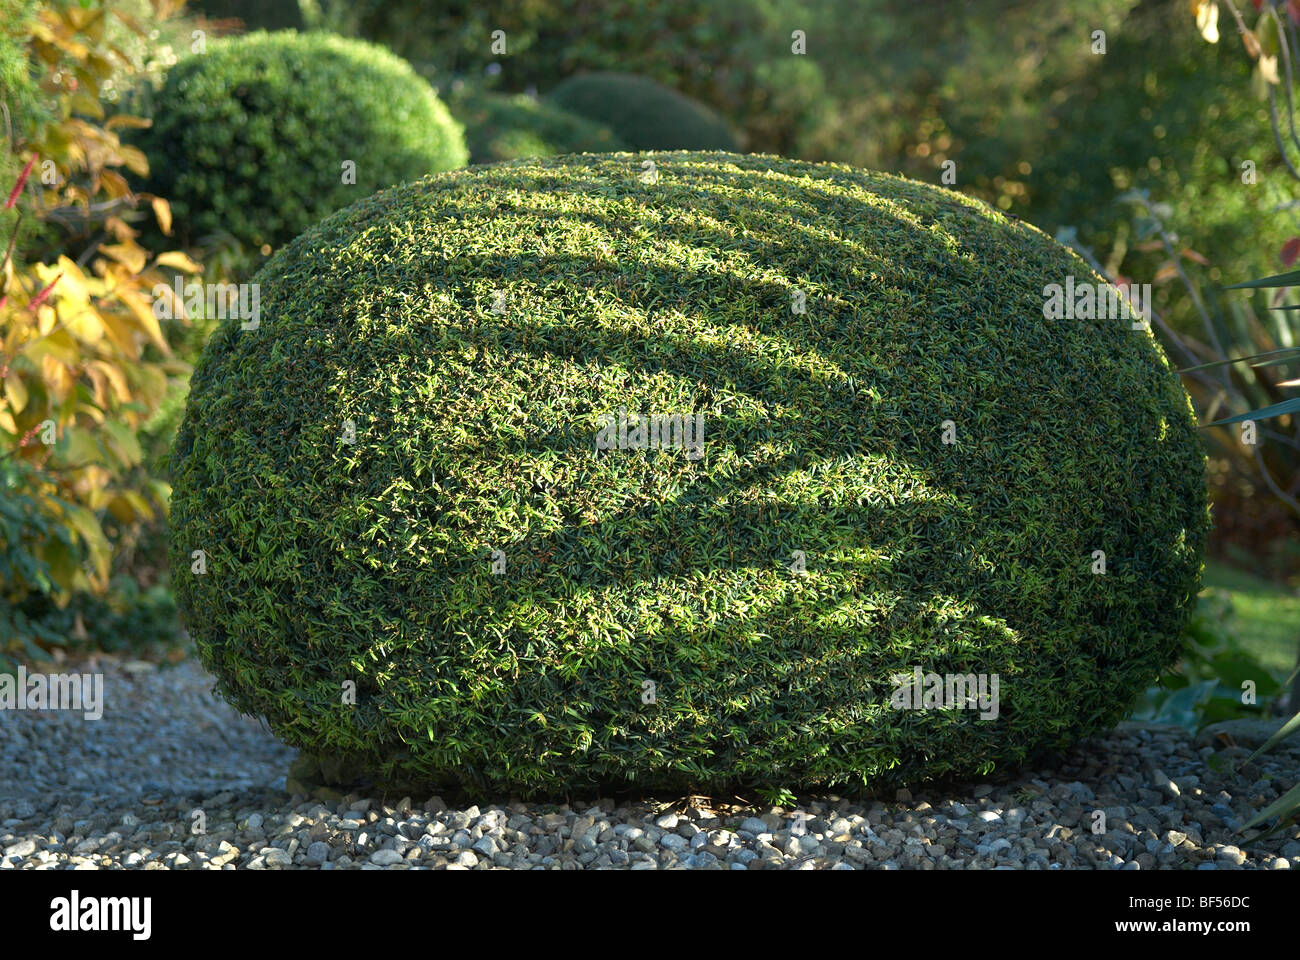 Clipped Yew hedge forming part of a topiary garden at Adel near Leeds UK - Stock Image